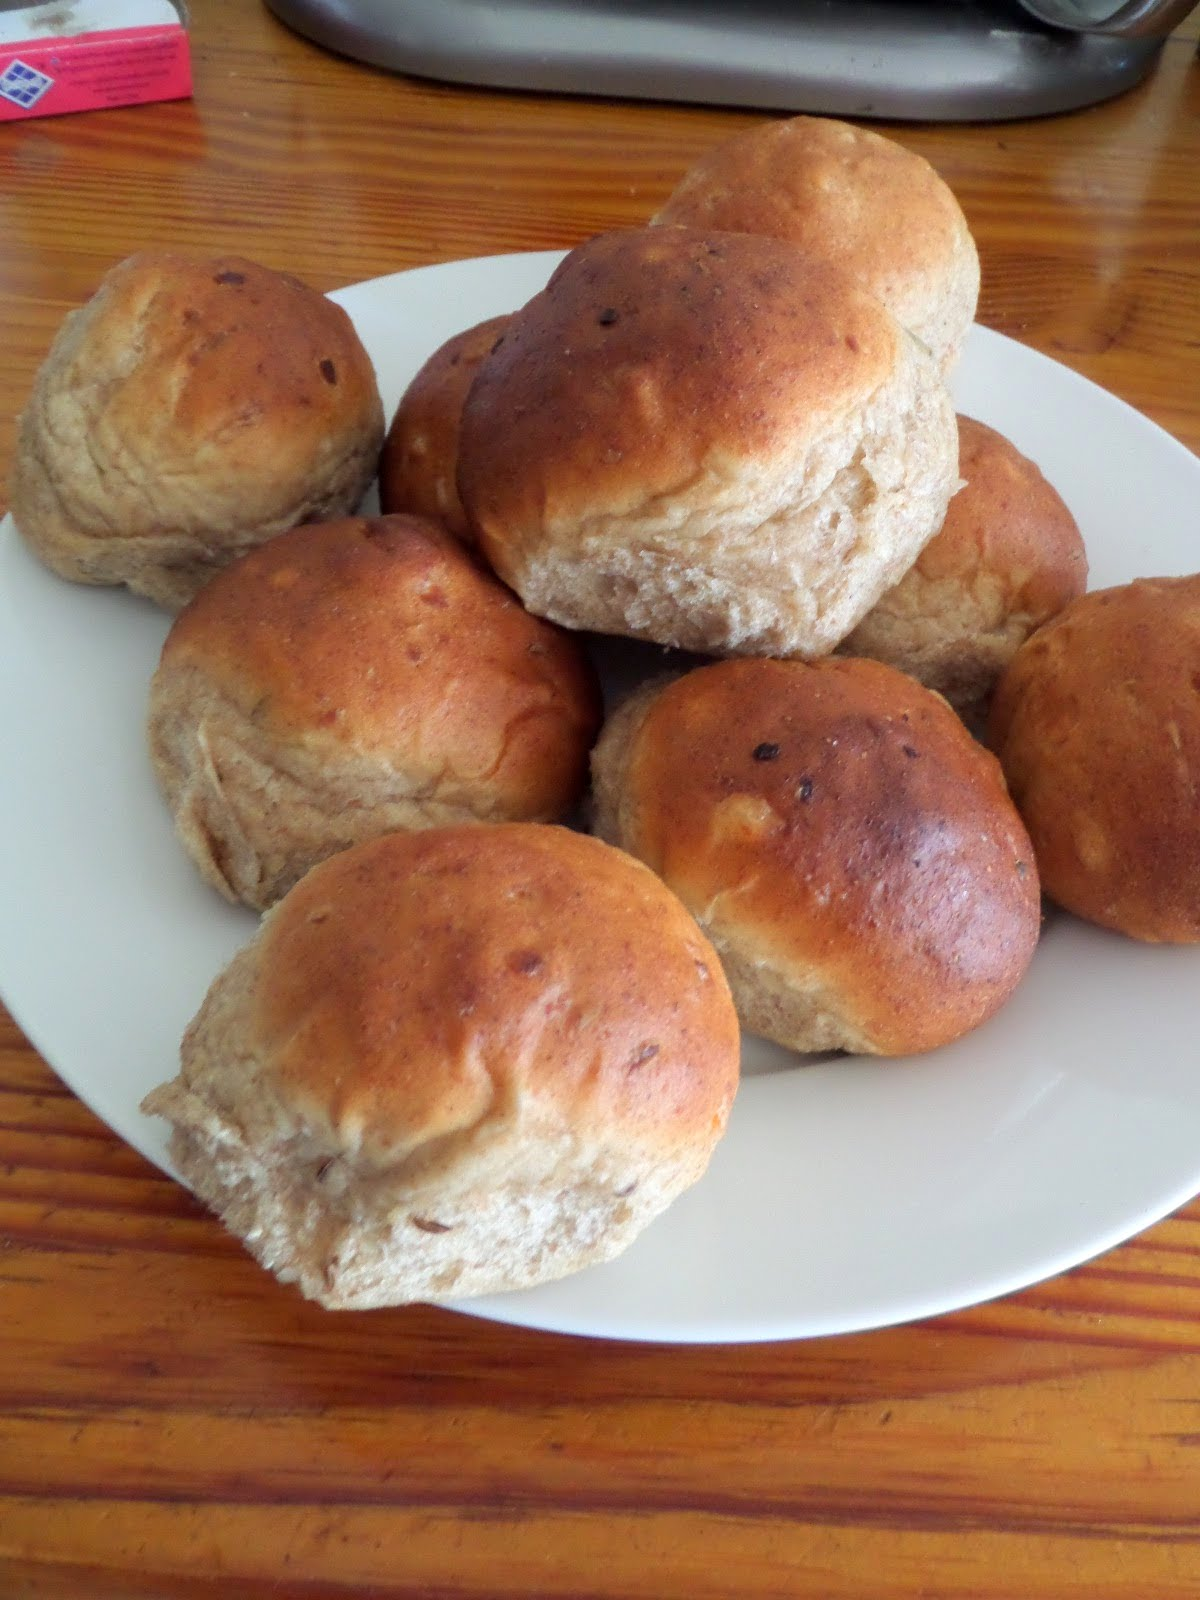 Rye Yeast Rolls:  Soft and fluffy yeast rolls made with rye flour, onions, and caraway seeds.